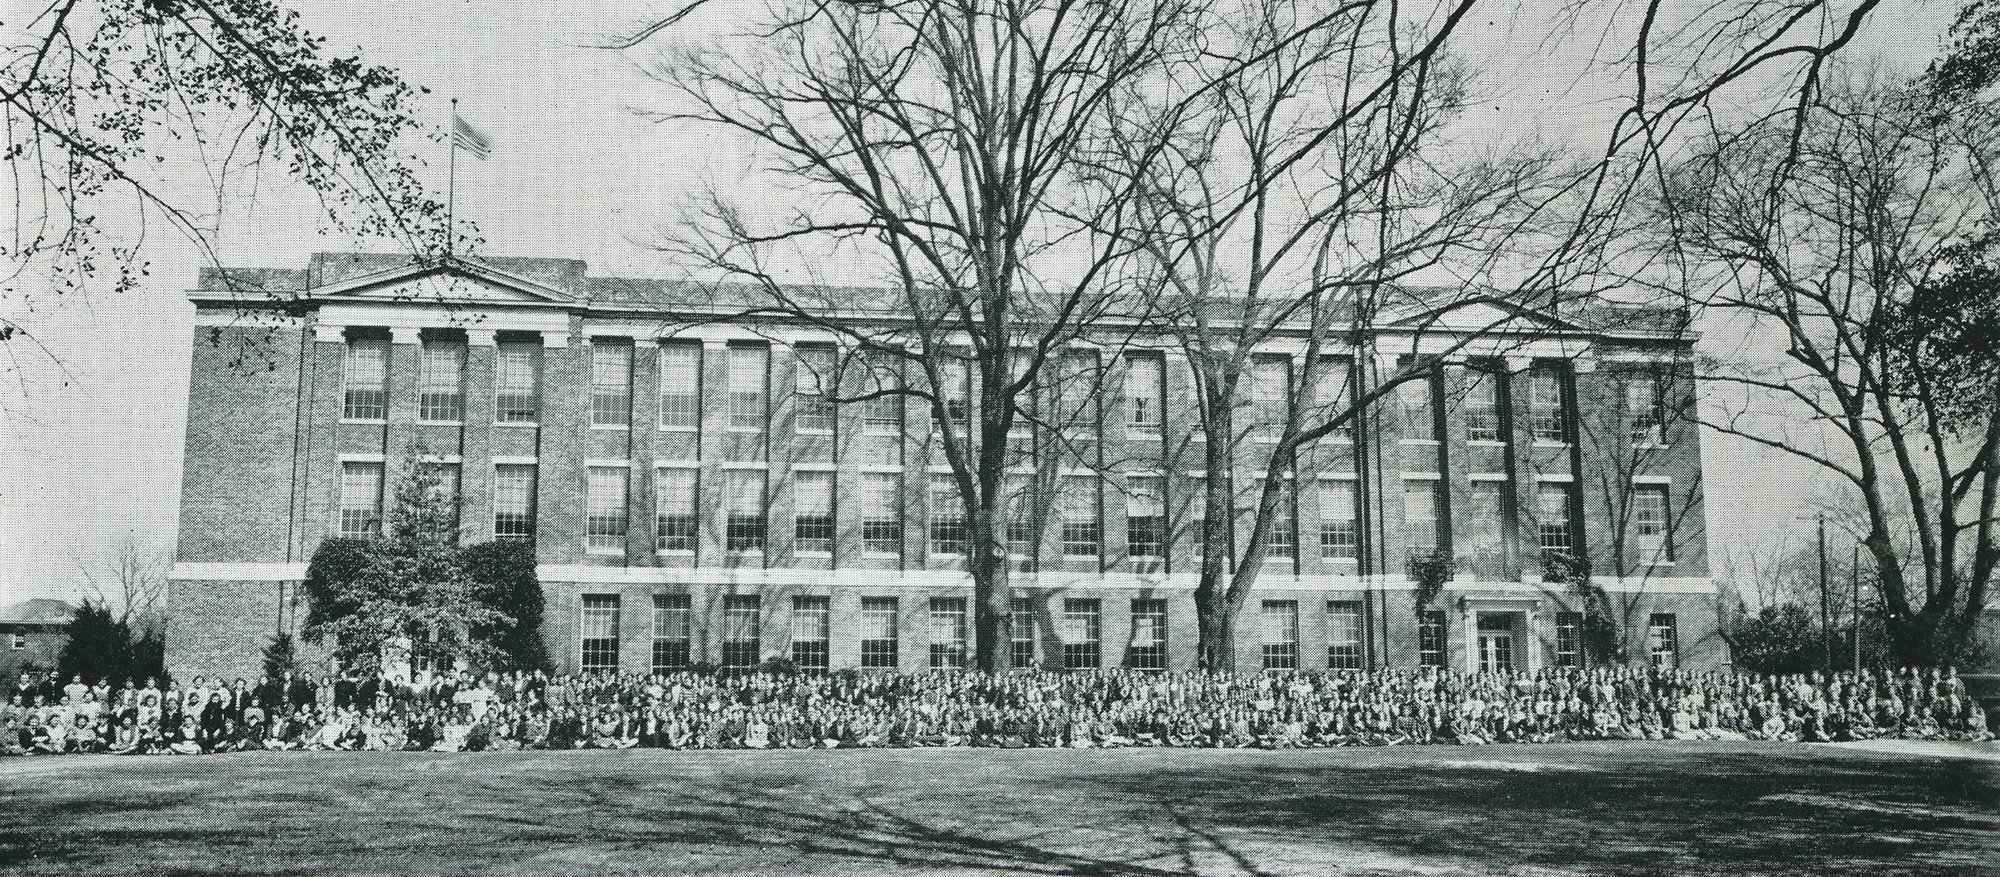 Girls' High School is seen in its yearbook photo in 1936.